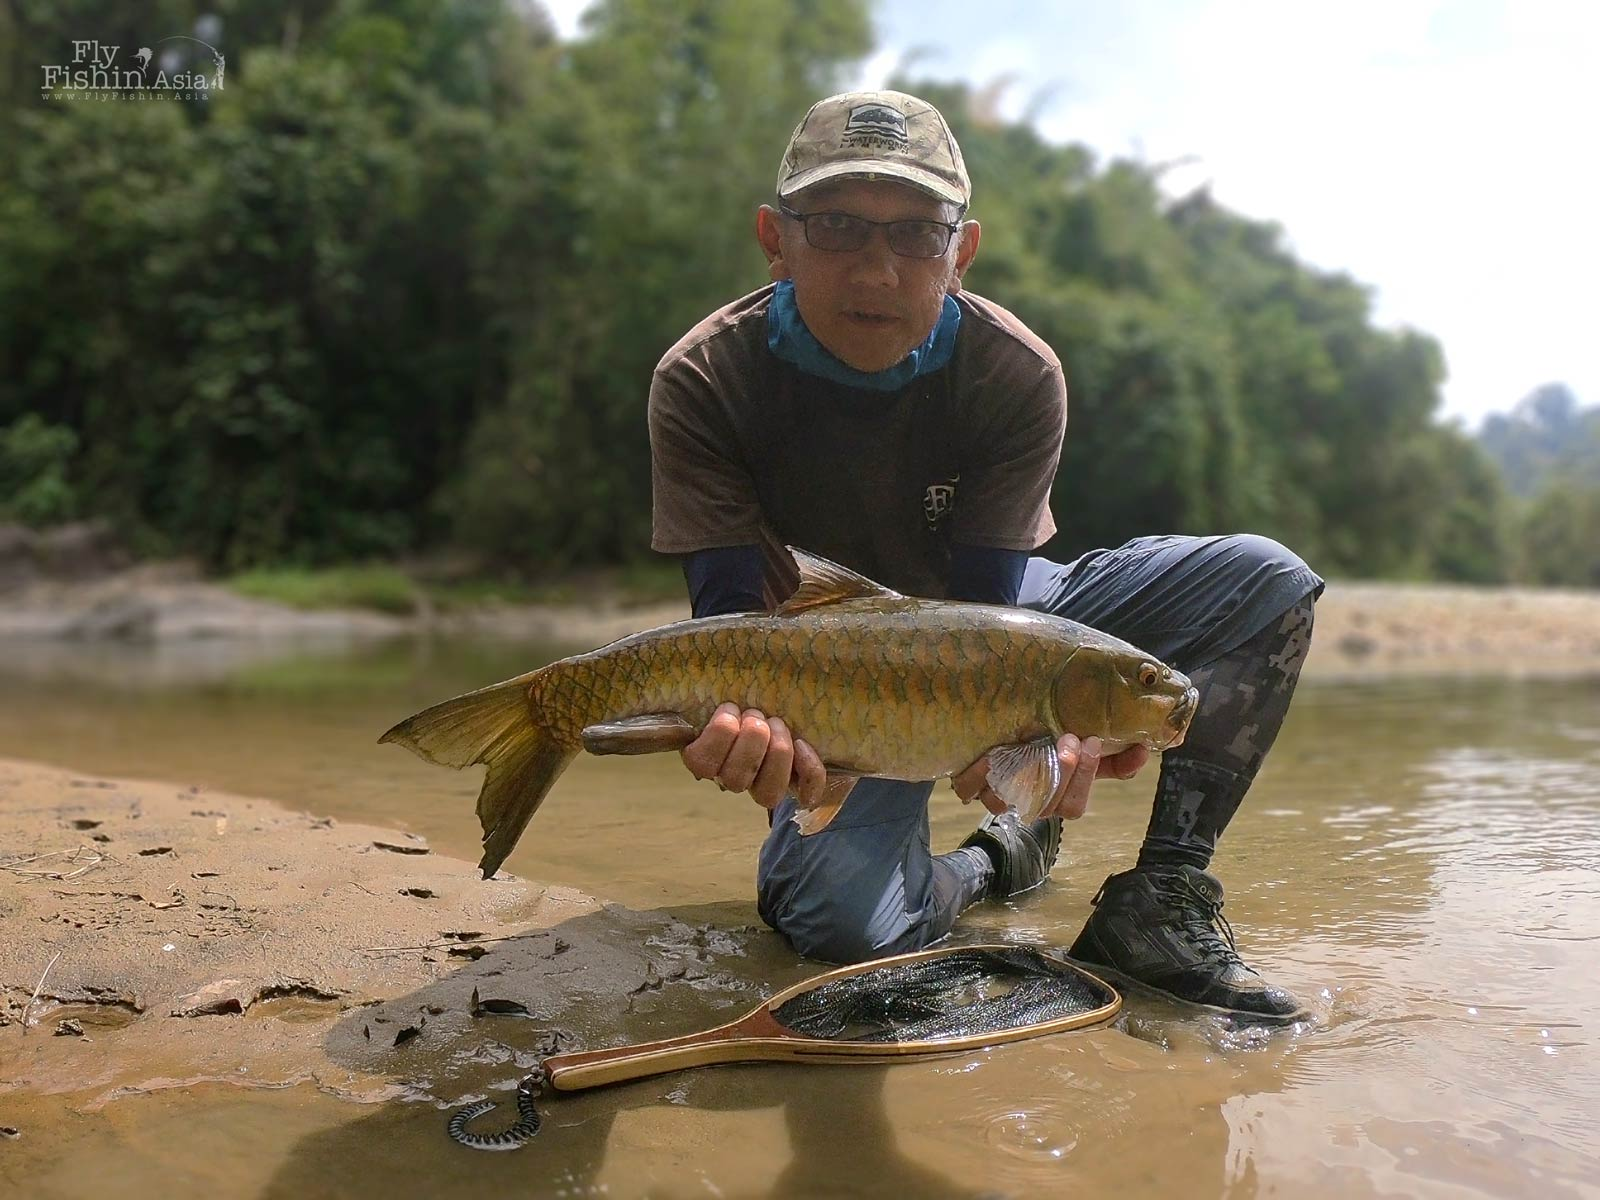 The author wearing the Orvis Ultralight Wading Boots in action holding a Thai Mahseer catch.